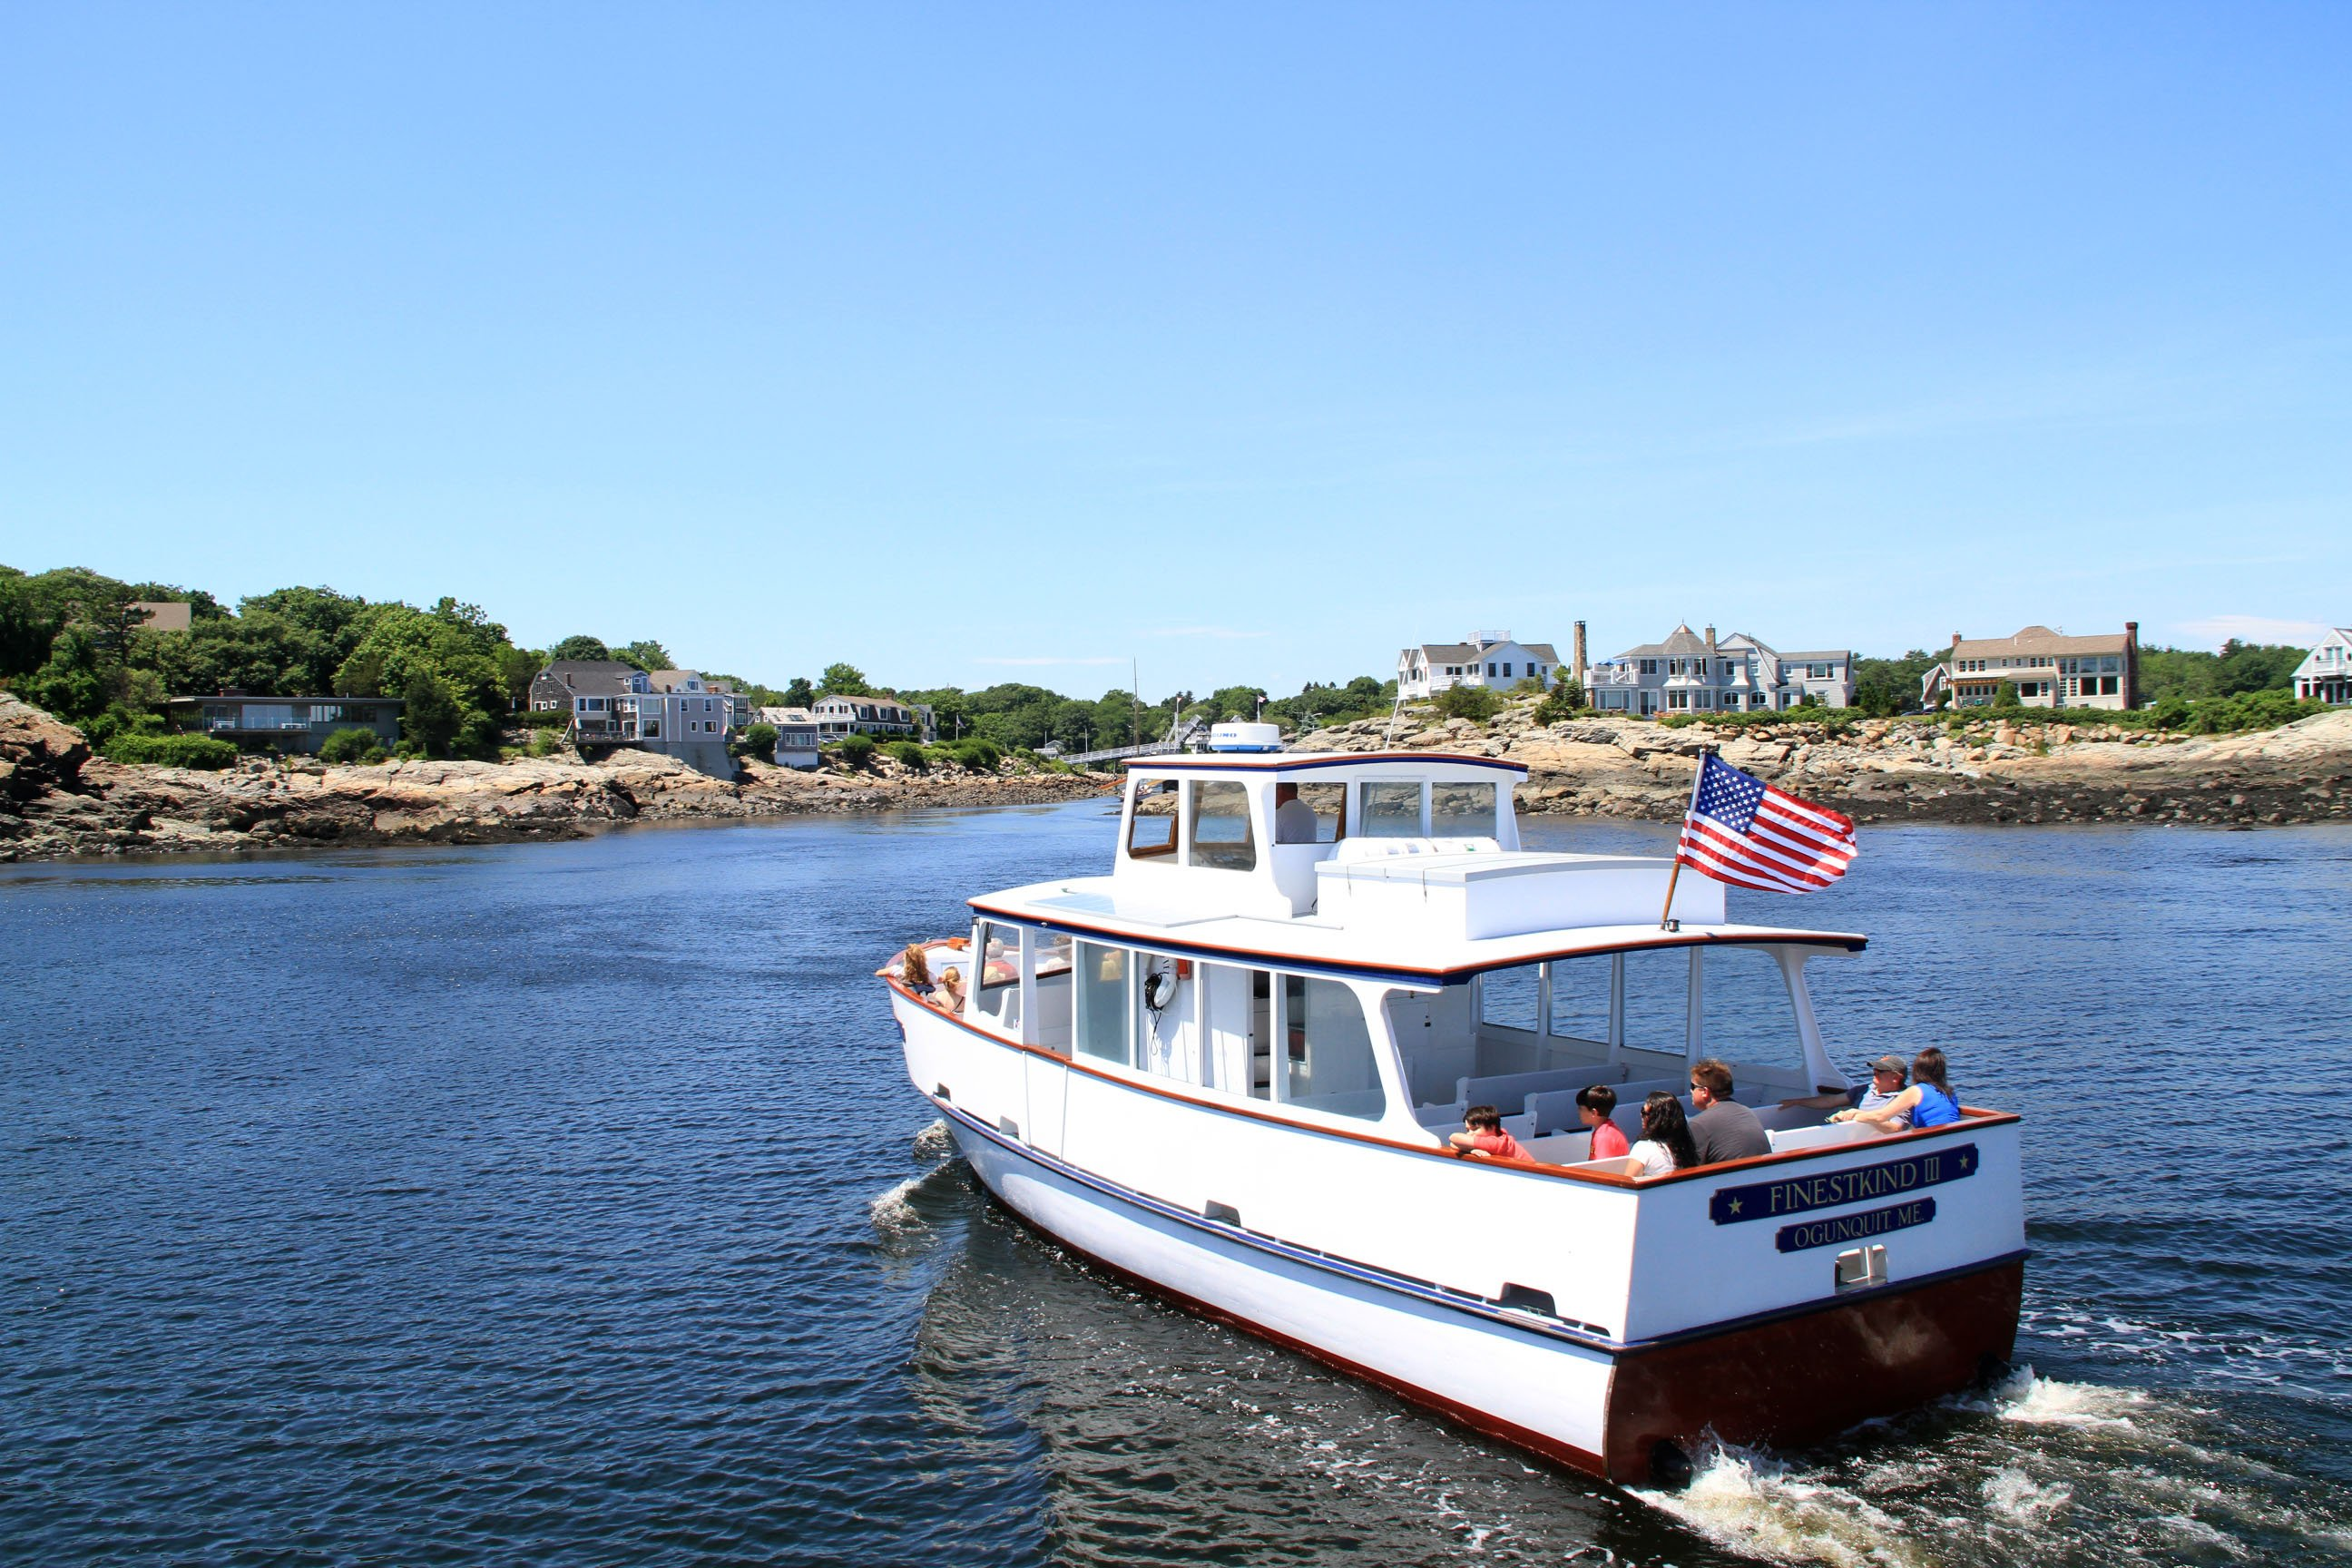 Perkins Cove Boat Tour